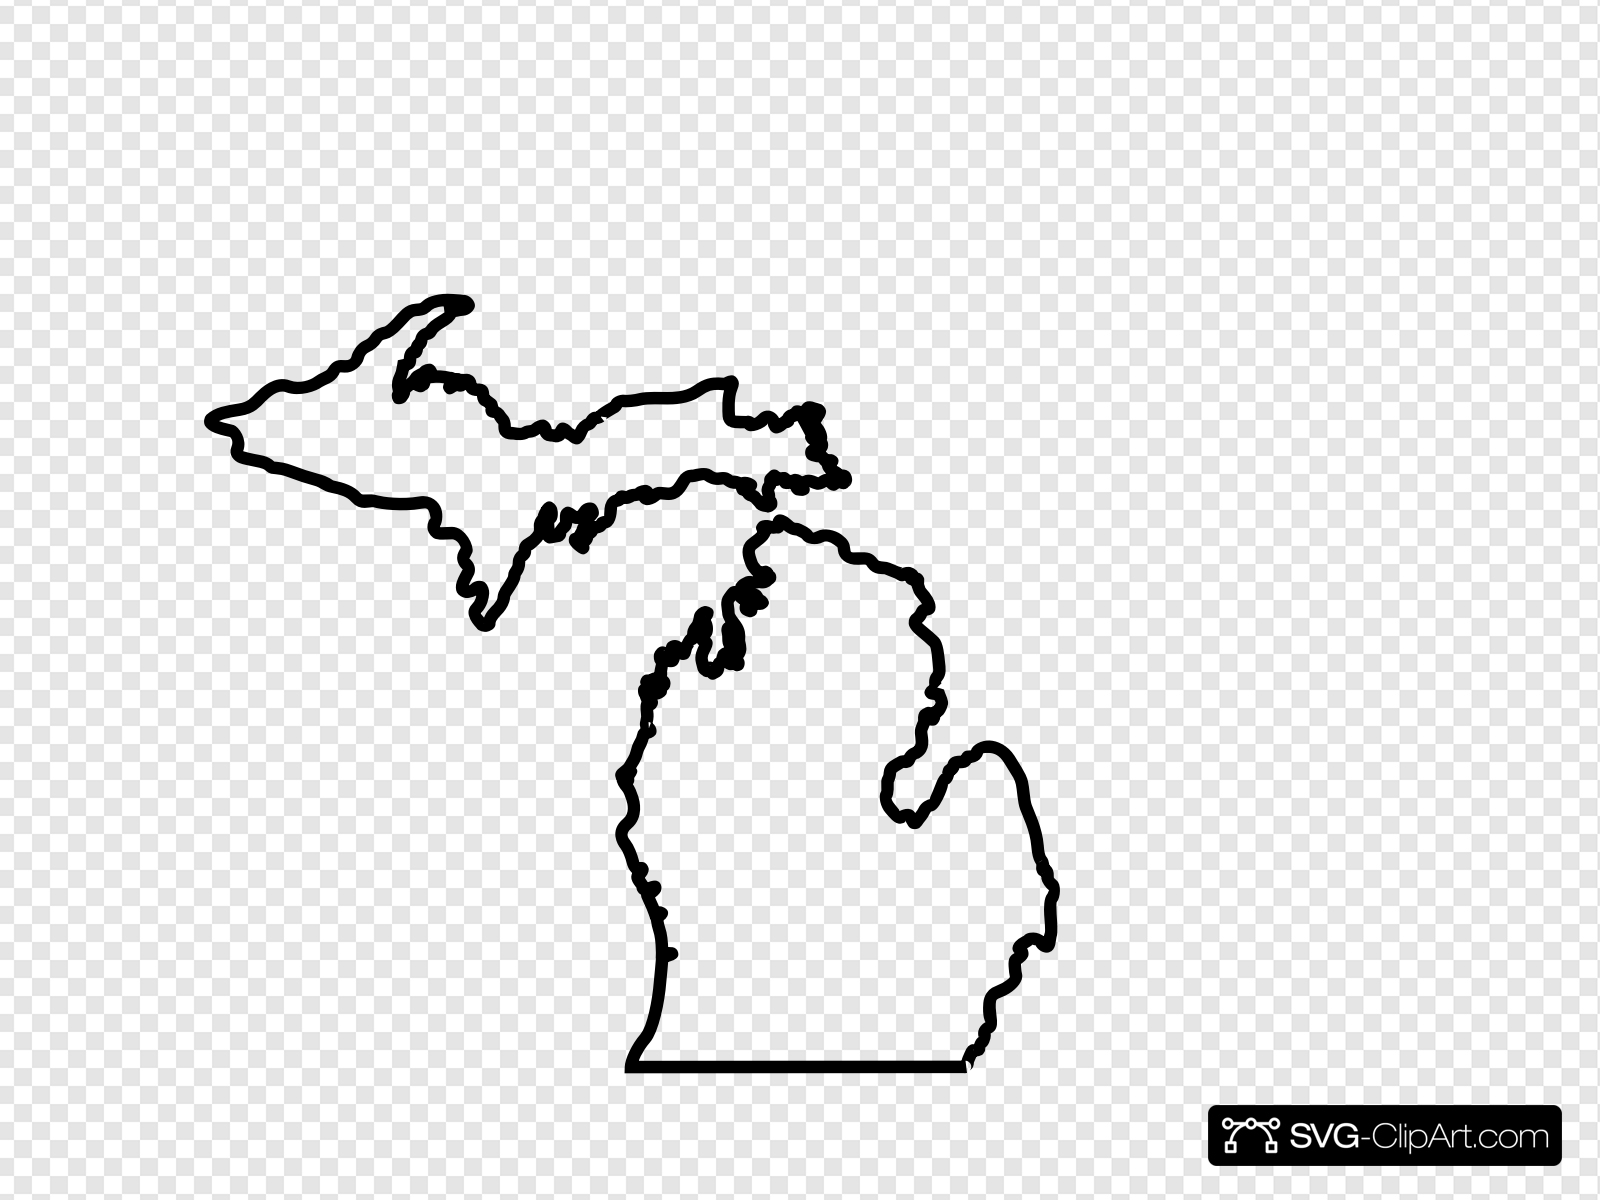 Michigan Map Outline Clip art, Icon and SVG.